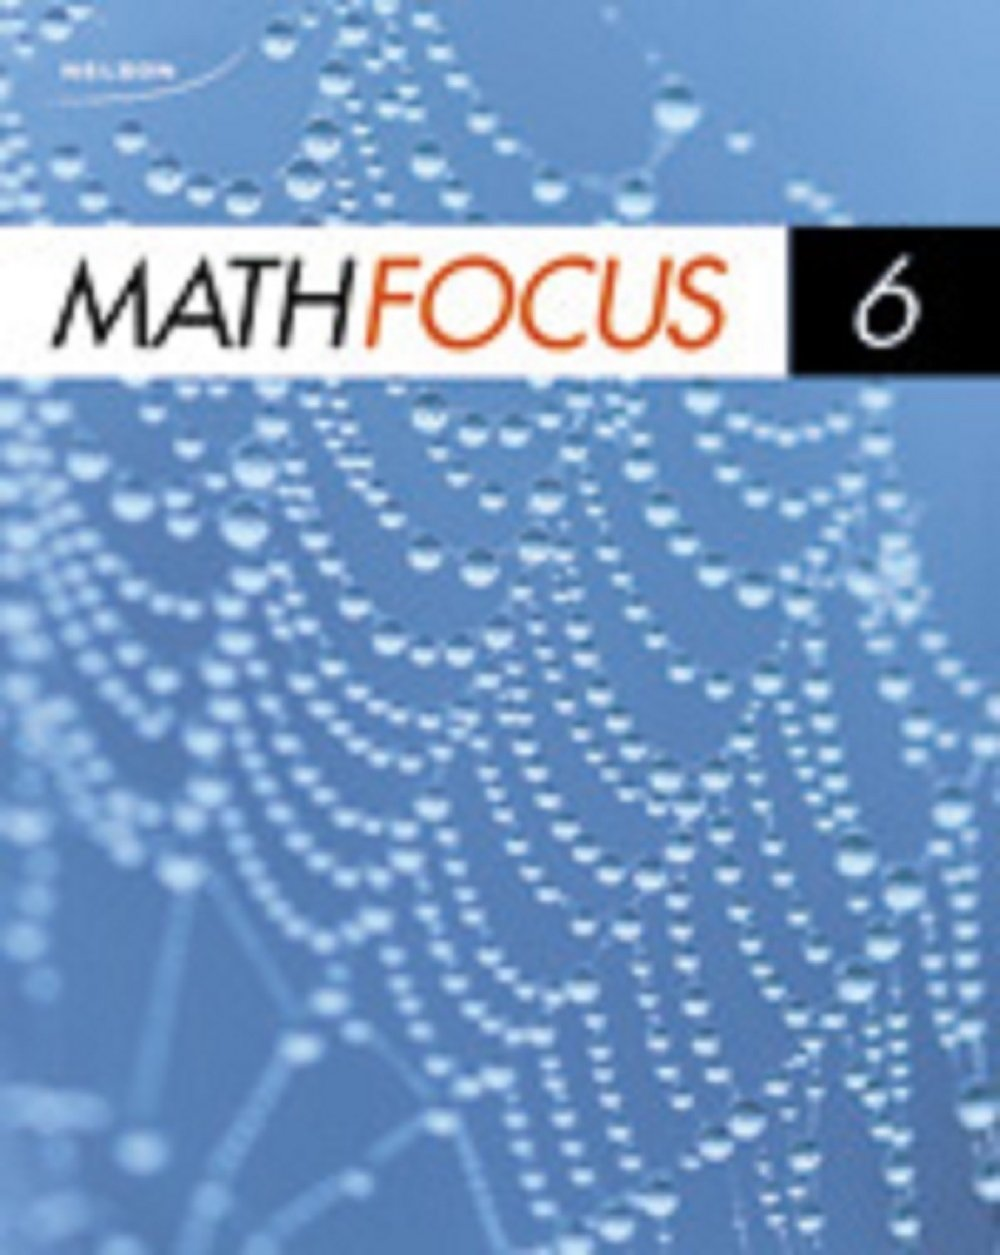 Nelson Math Focus 6 Student Book: unknown: 9780176324599: Amazon ...